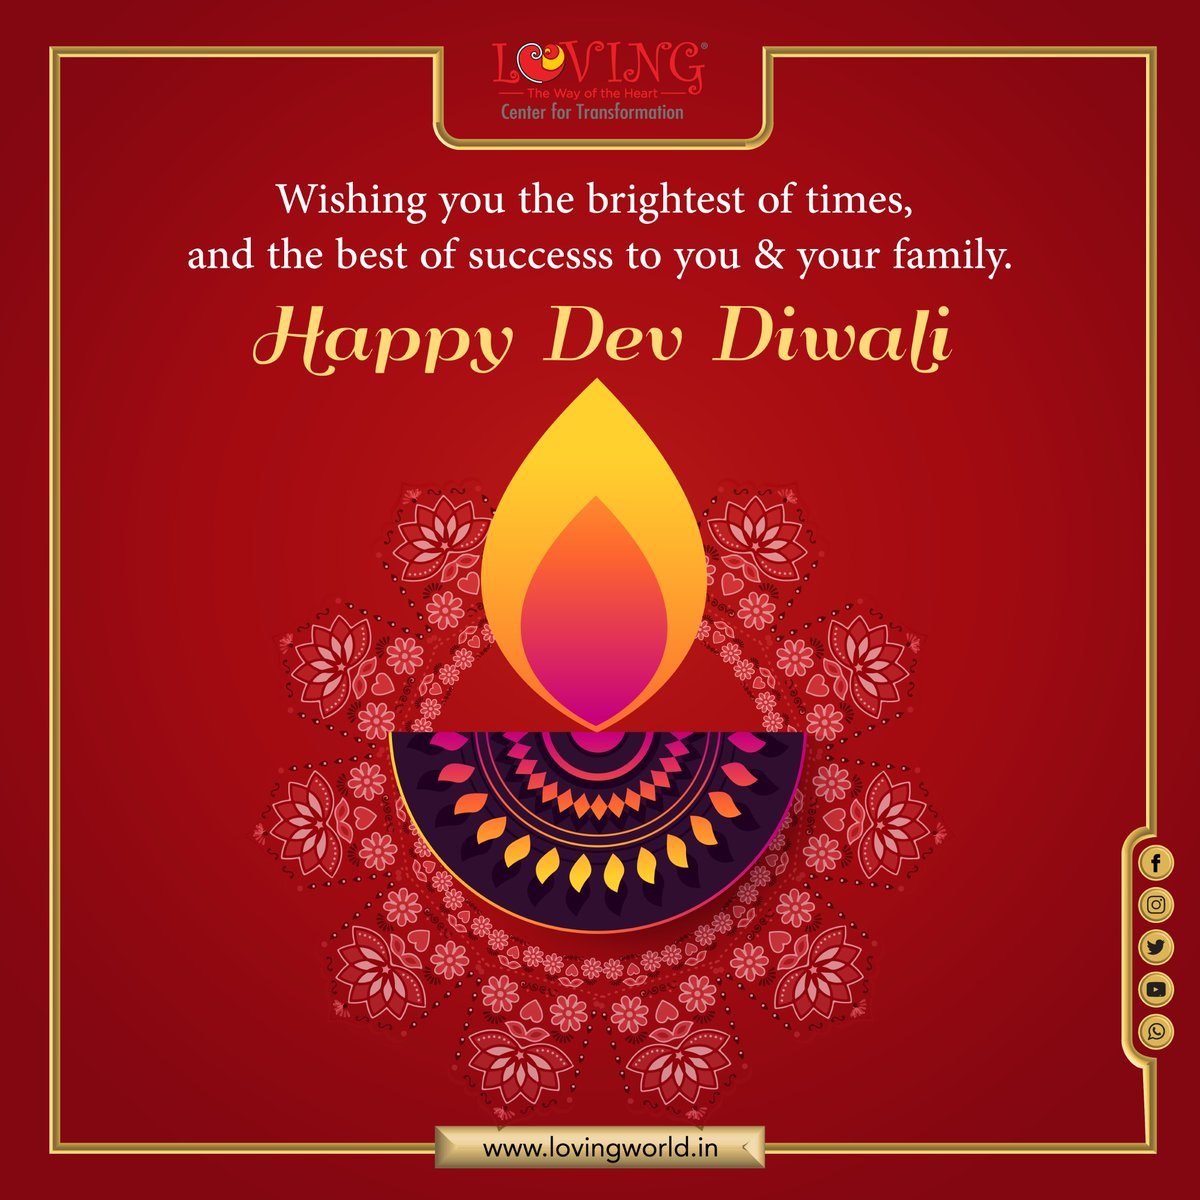 Wish you are blessed with peace, prosperity, happiness, good health and grand success. *** HAPPY Dev DIWALI *** . . . #HappyDevDiwali #DevDiwali #DevDipavali #DevDiwali2020 #Diwali #HappyDiwali #Diwali2020 #HappyDiwali2020 #कार्तिक_पूर्णिमा #KartikPurnima